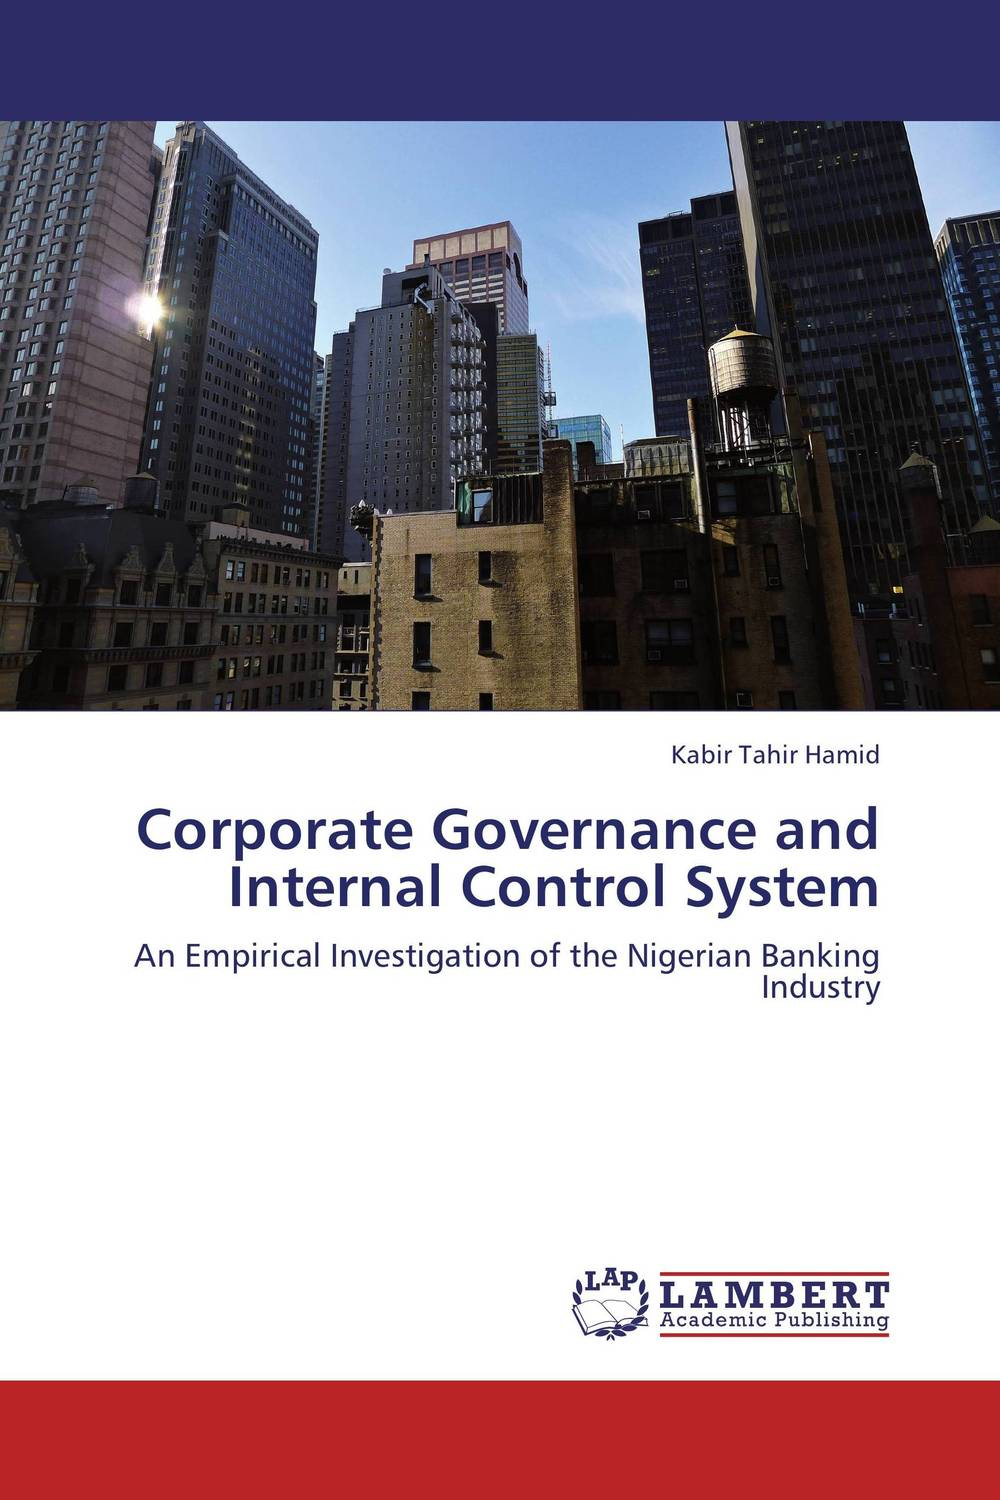 Corporate Governance and Internal Control System corporate governance audit quality and opportunistic earnings